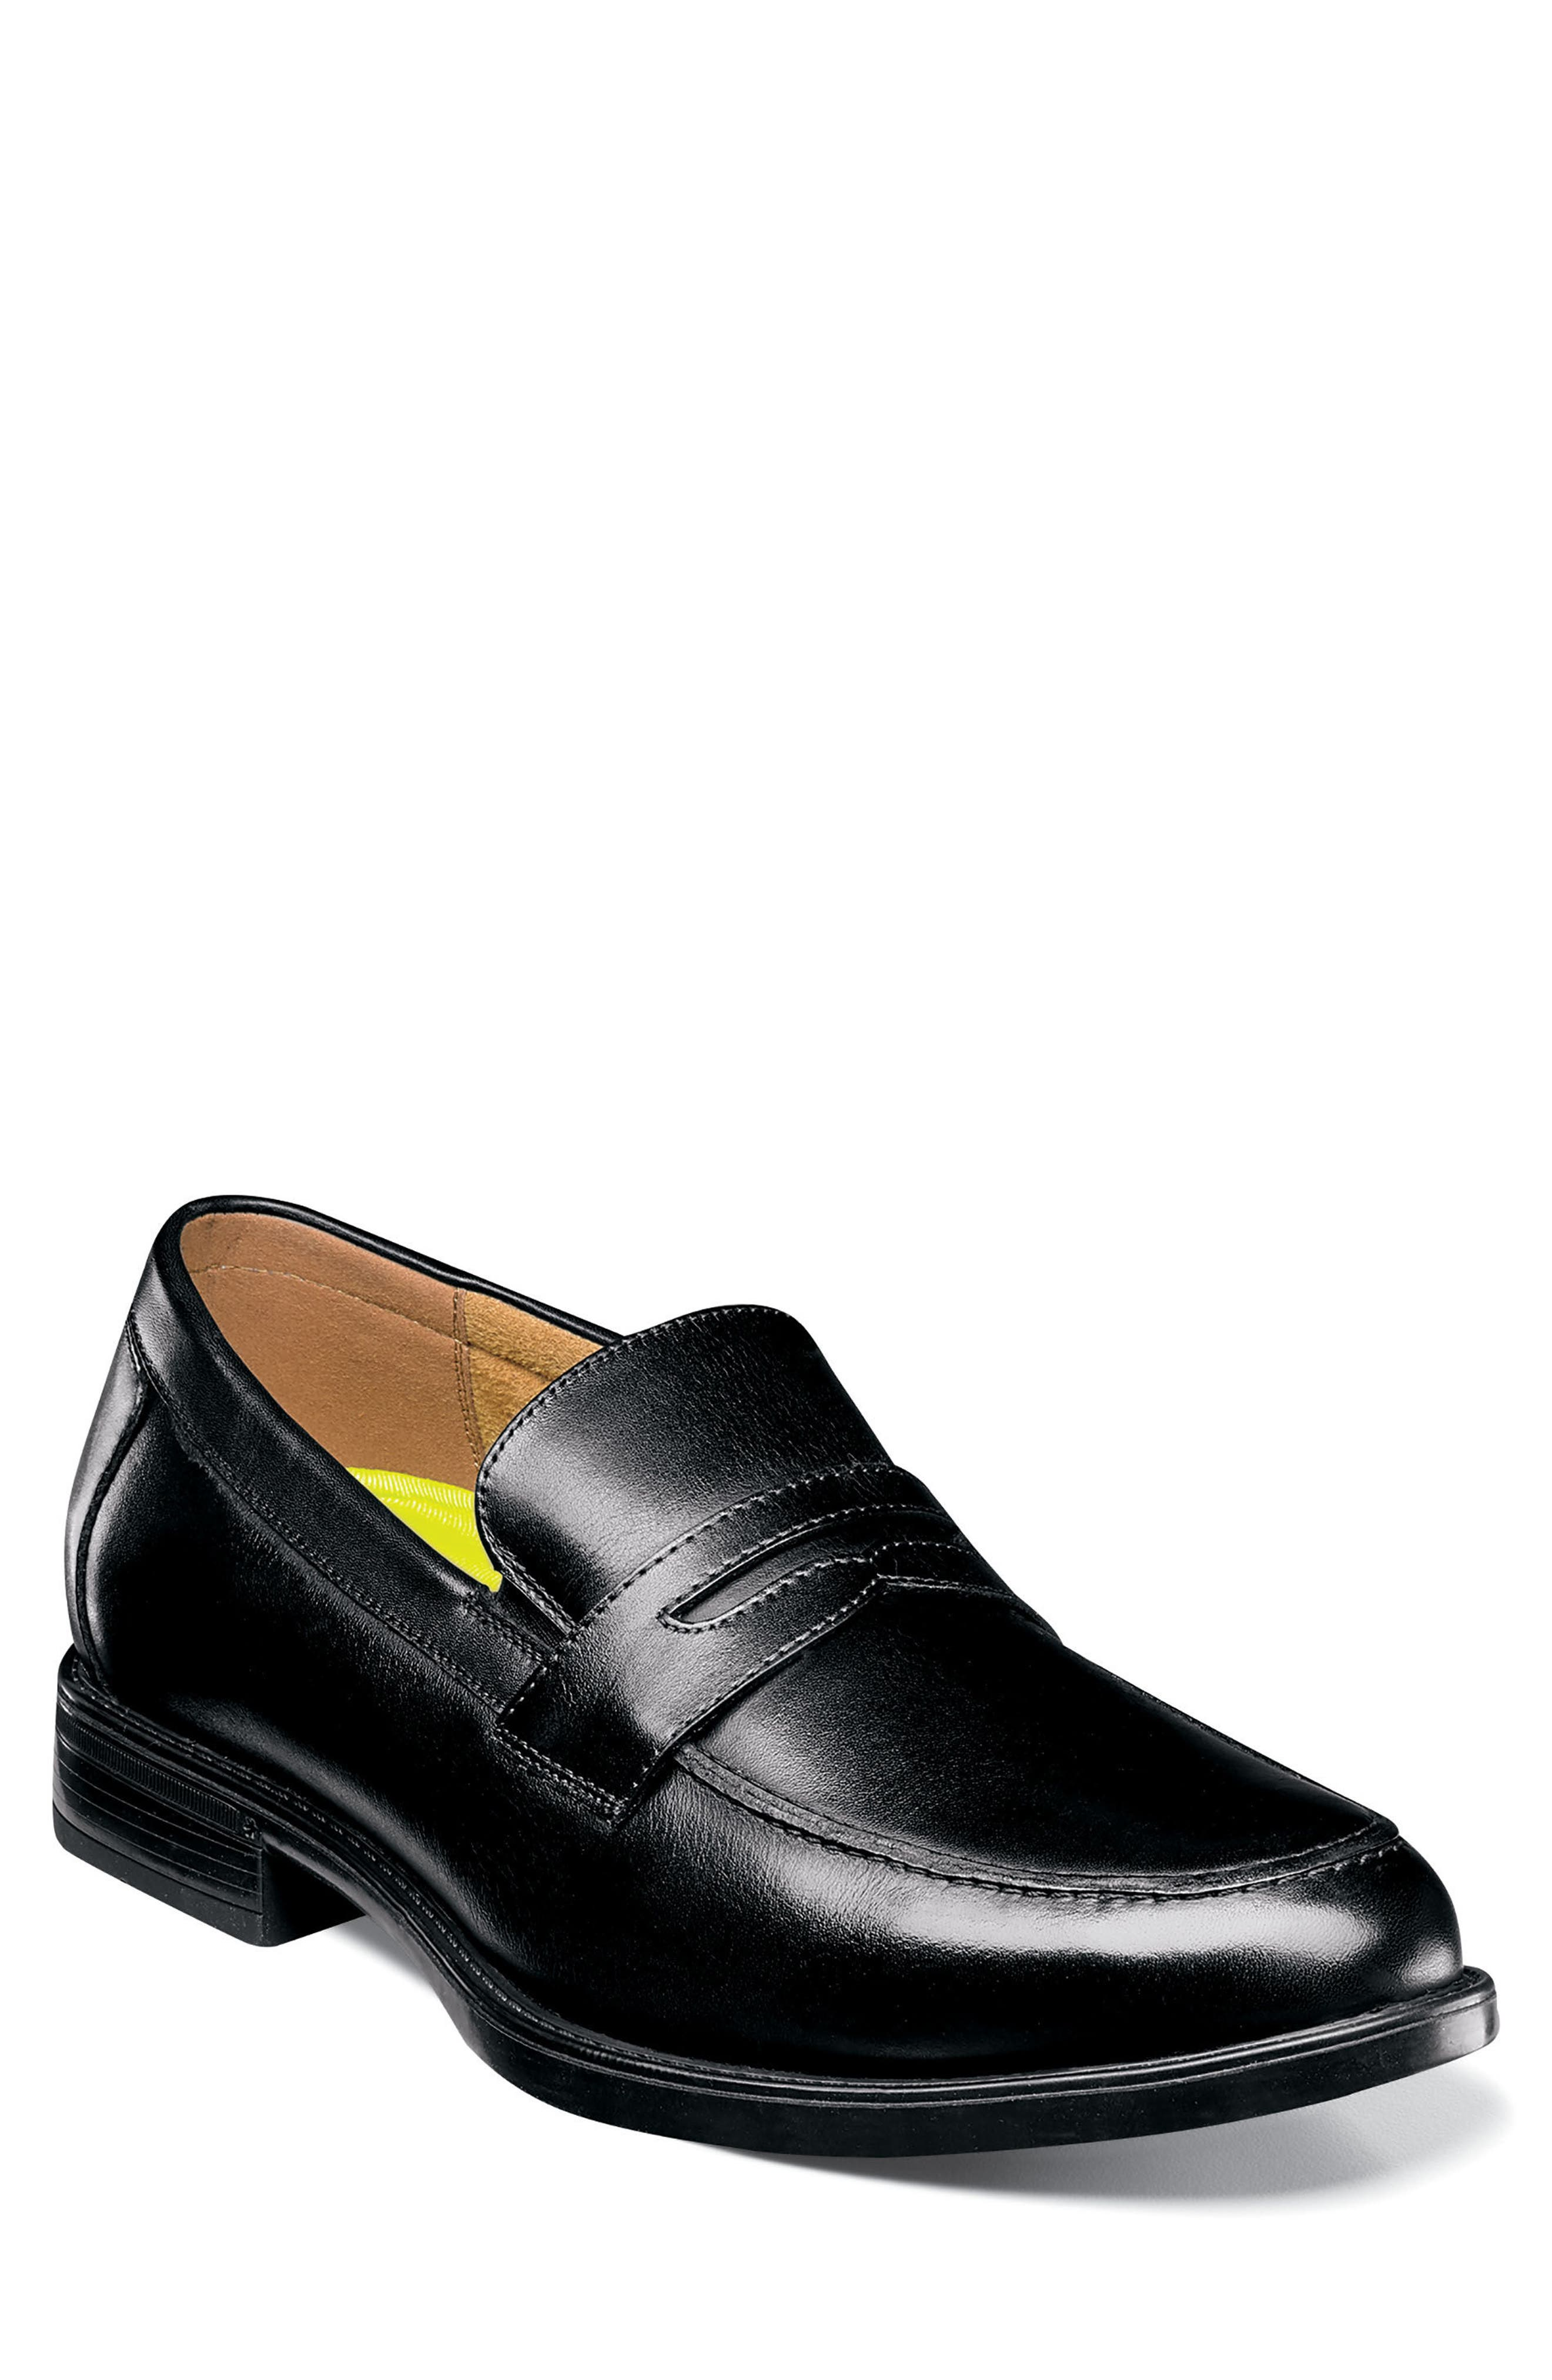 Midtown Penny Loafer,                             Main thumbnail 1, color,                             Black